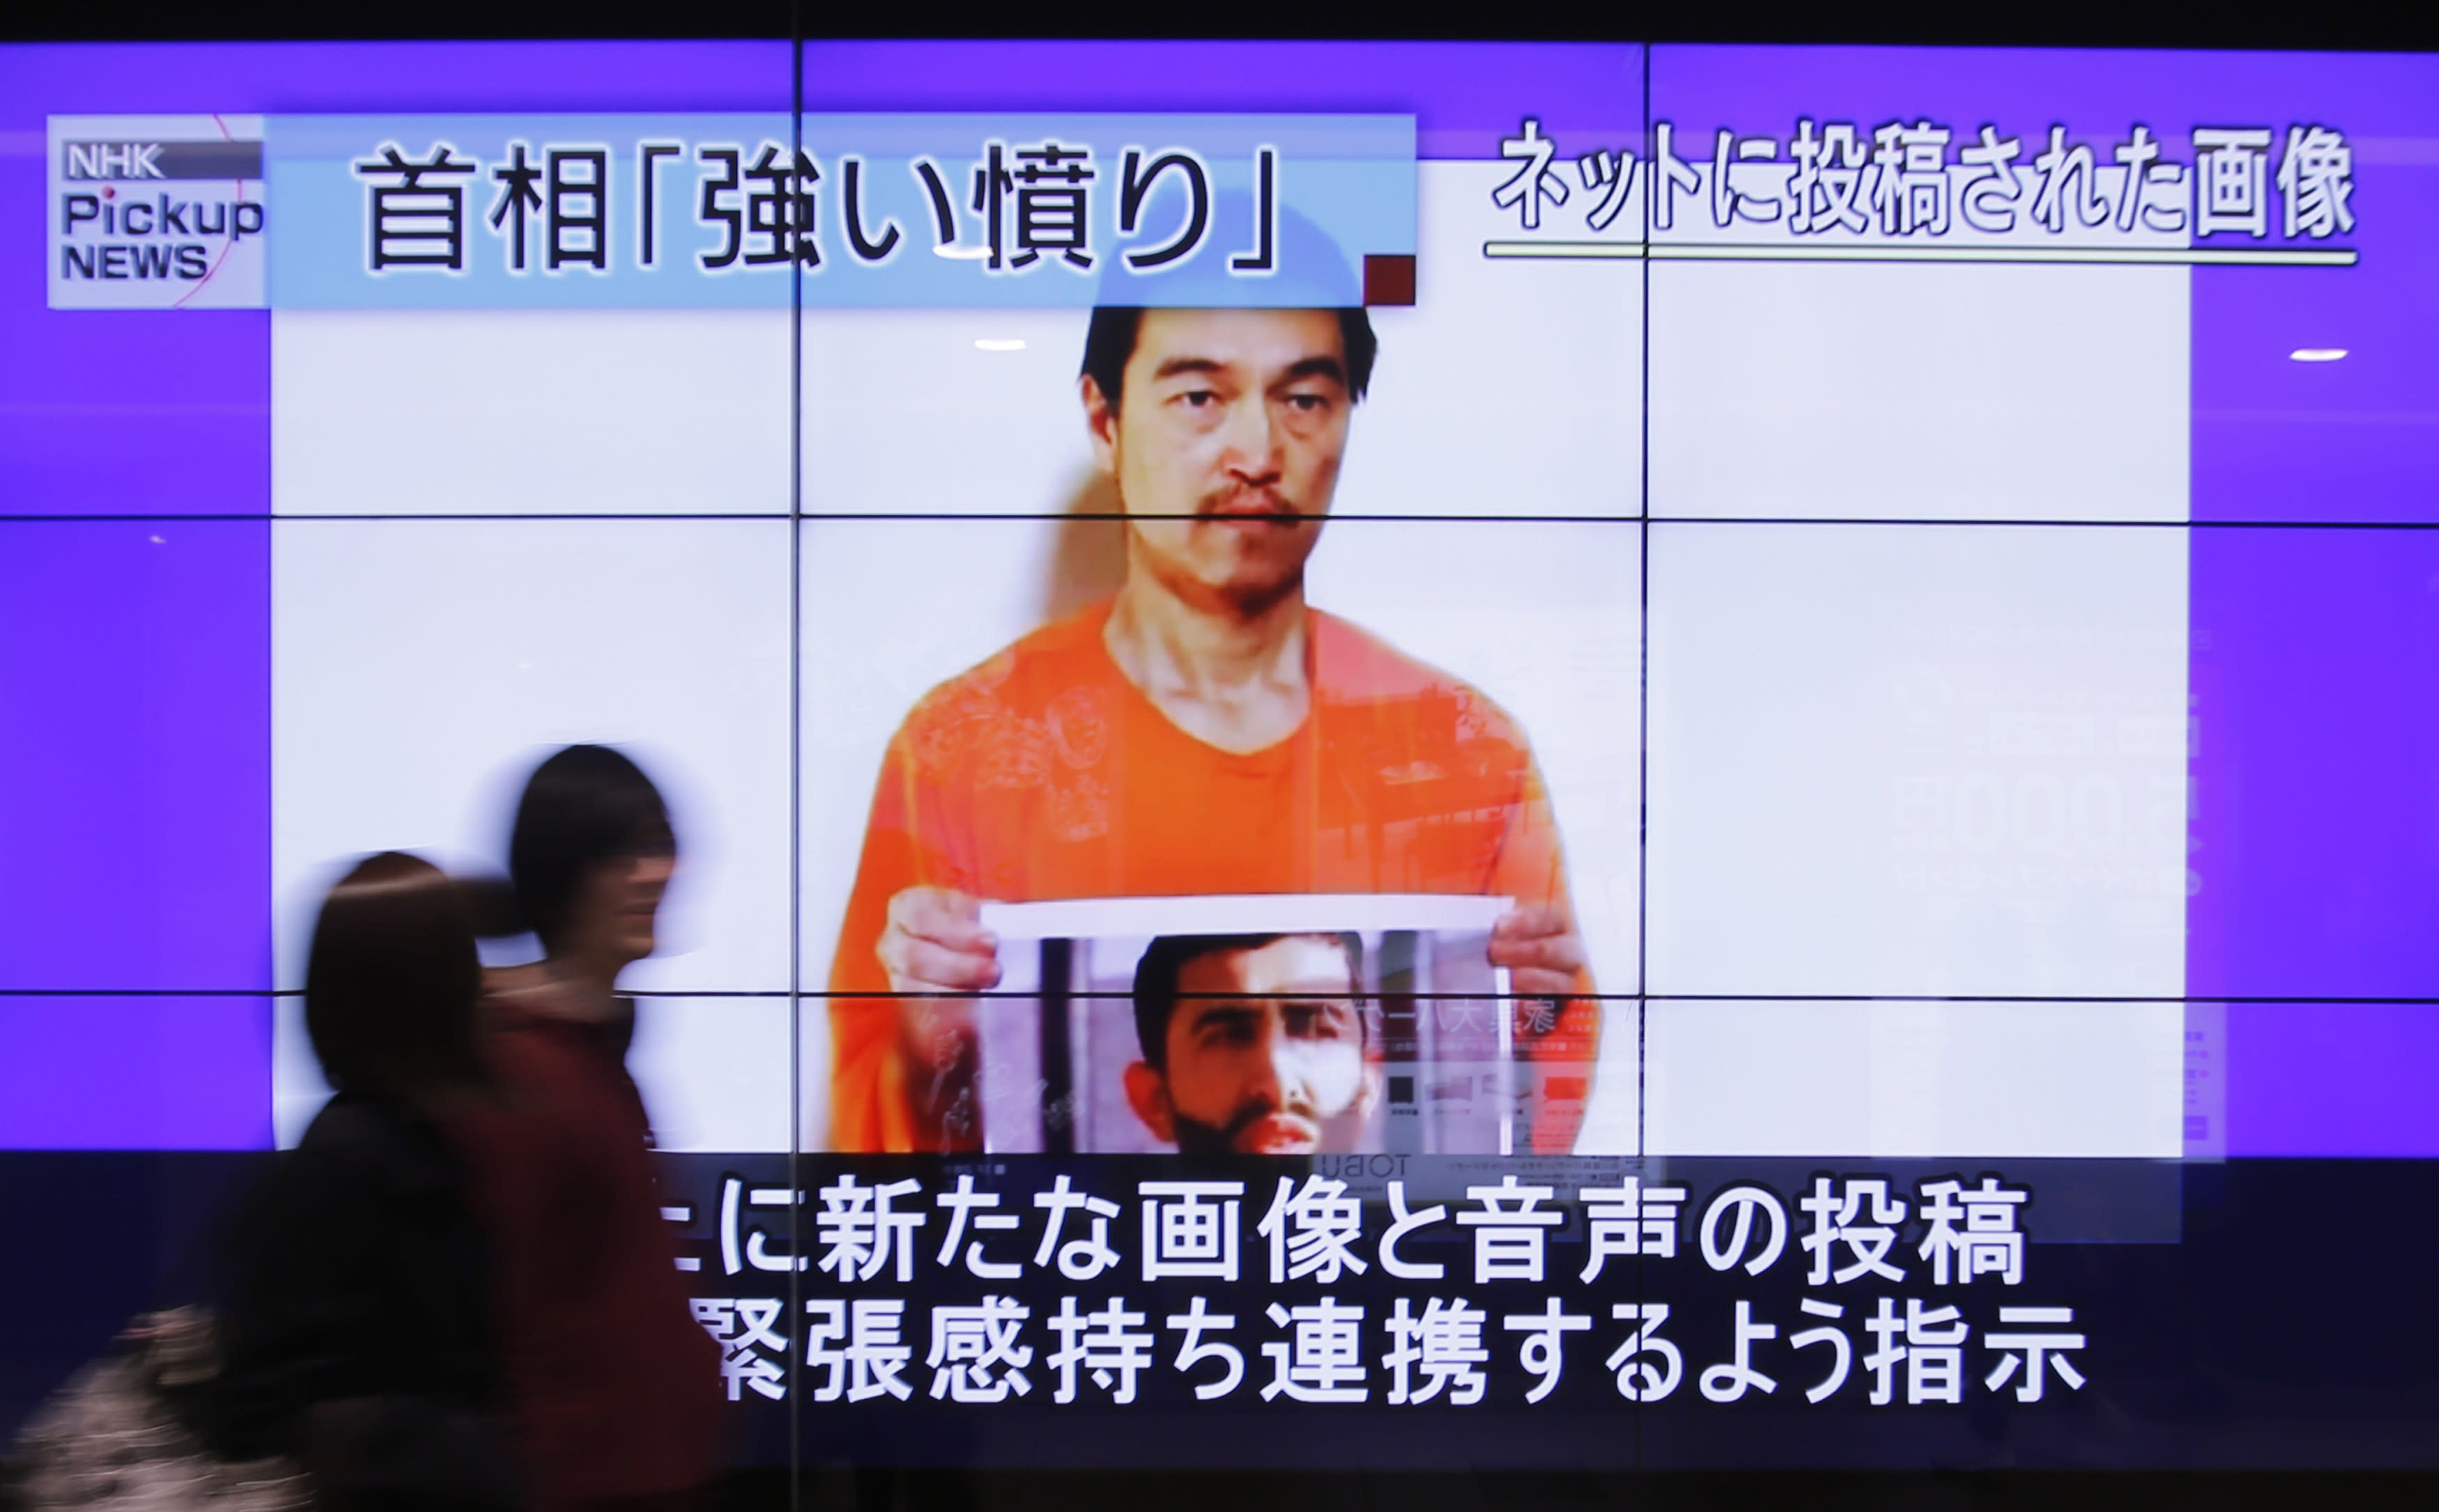 People walk past television screens displaying a news program, about an Islamic State video showing Japanese captive Kenji Goto, on a street in Tokyo January 28, 2015. Jordan said on Wednesday it was willing to hand over an Iraqi woman jailed for her role in a 2005 suicide bomb attack if a Jordanian pilot captured by Islamic State was released. Government spokesman Mohammad al-Momani made no mention of Japanese hostage Kenji Goto, a veteran war reporter who is also being held by the militant group. REUTERS/Yuya Shino (JAPAN - Tags: POLITICS CIVIL UNREST)